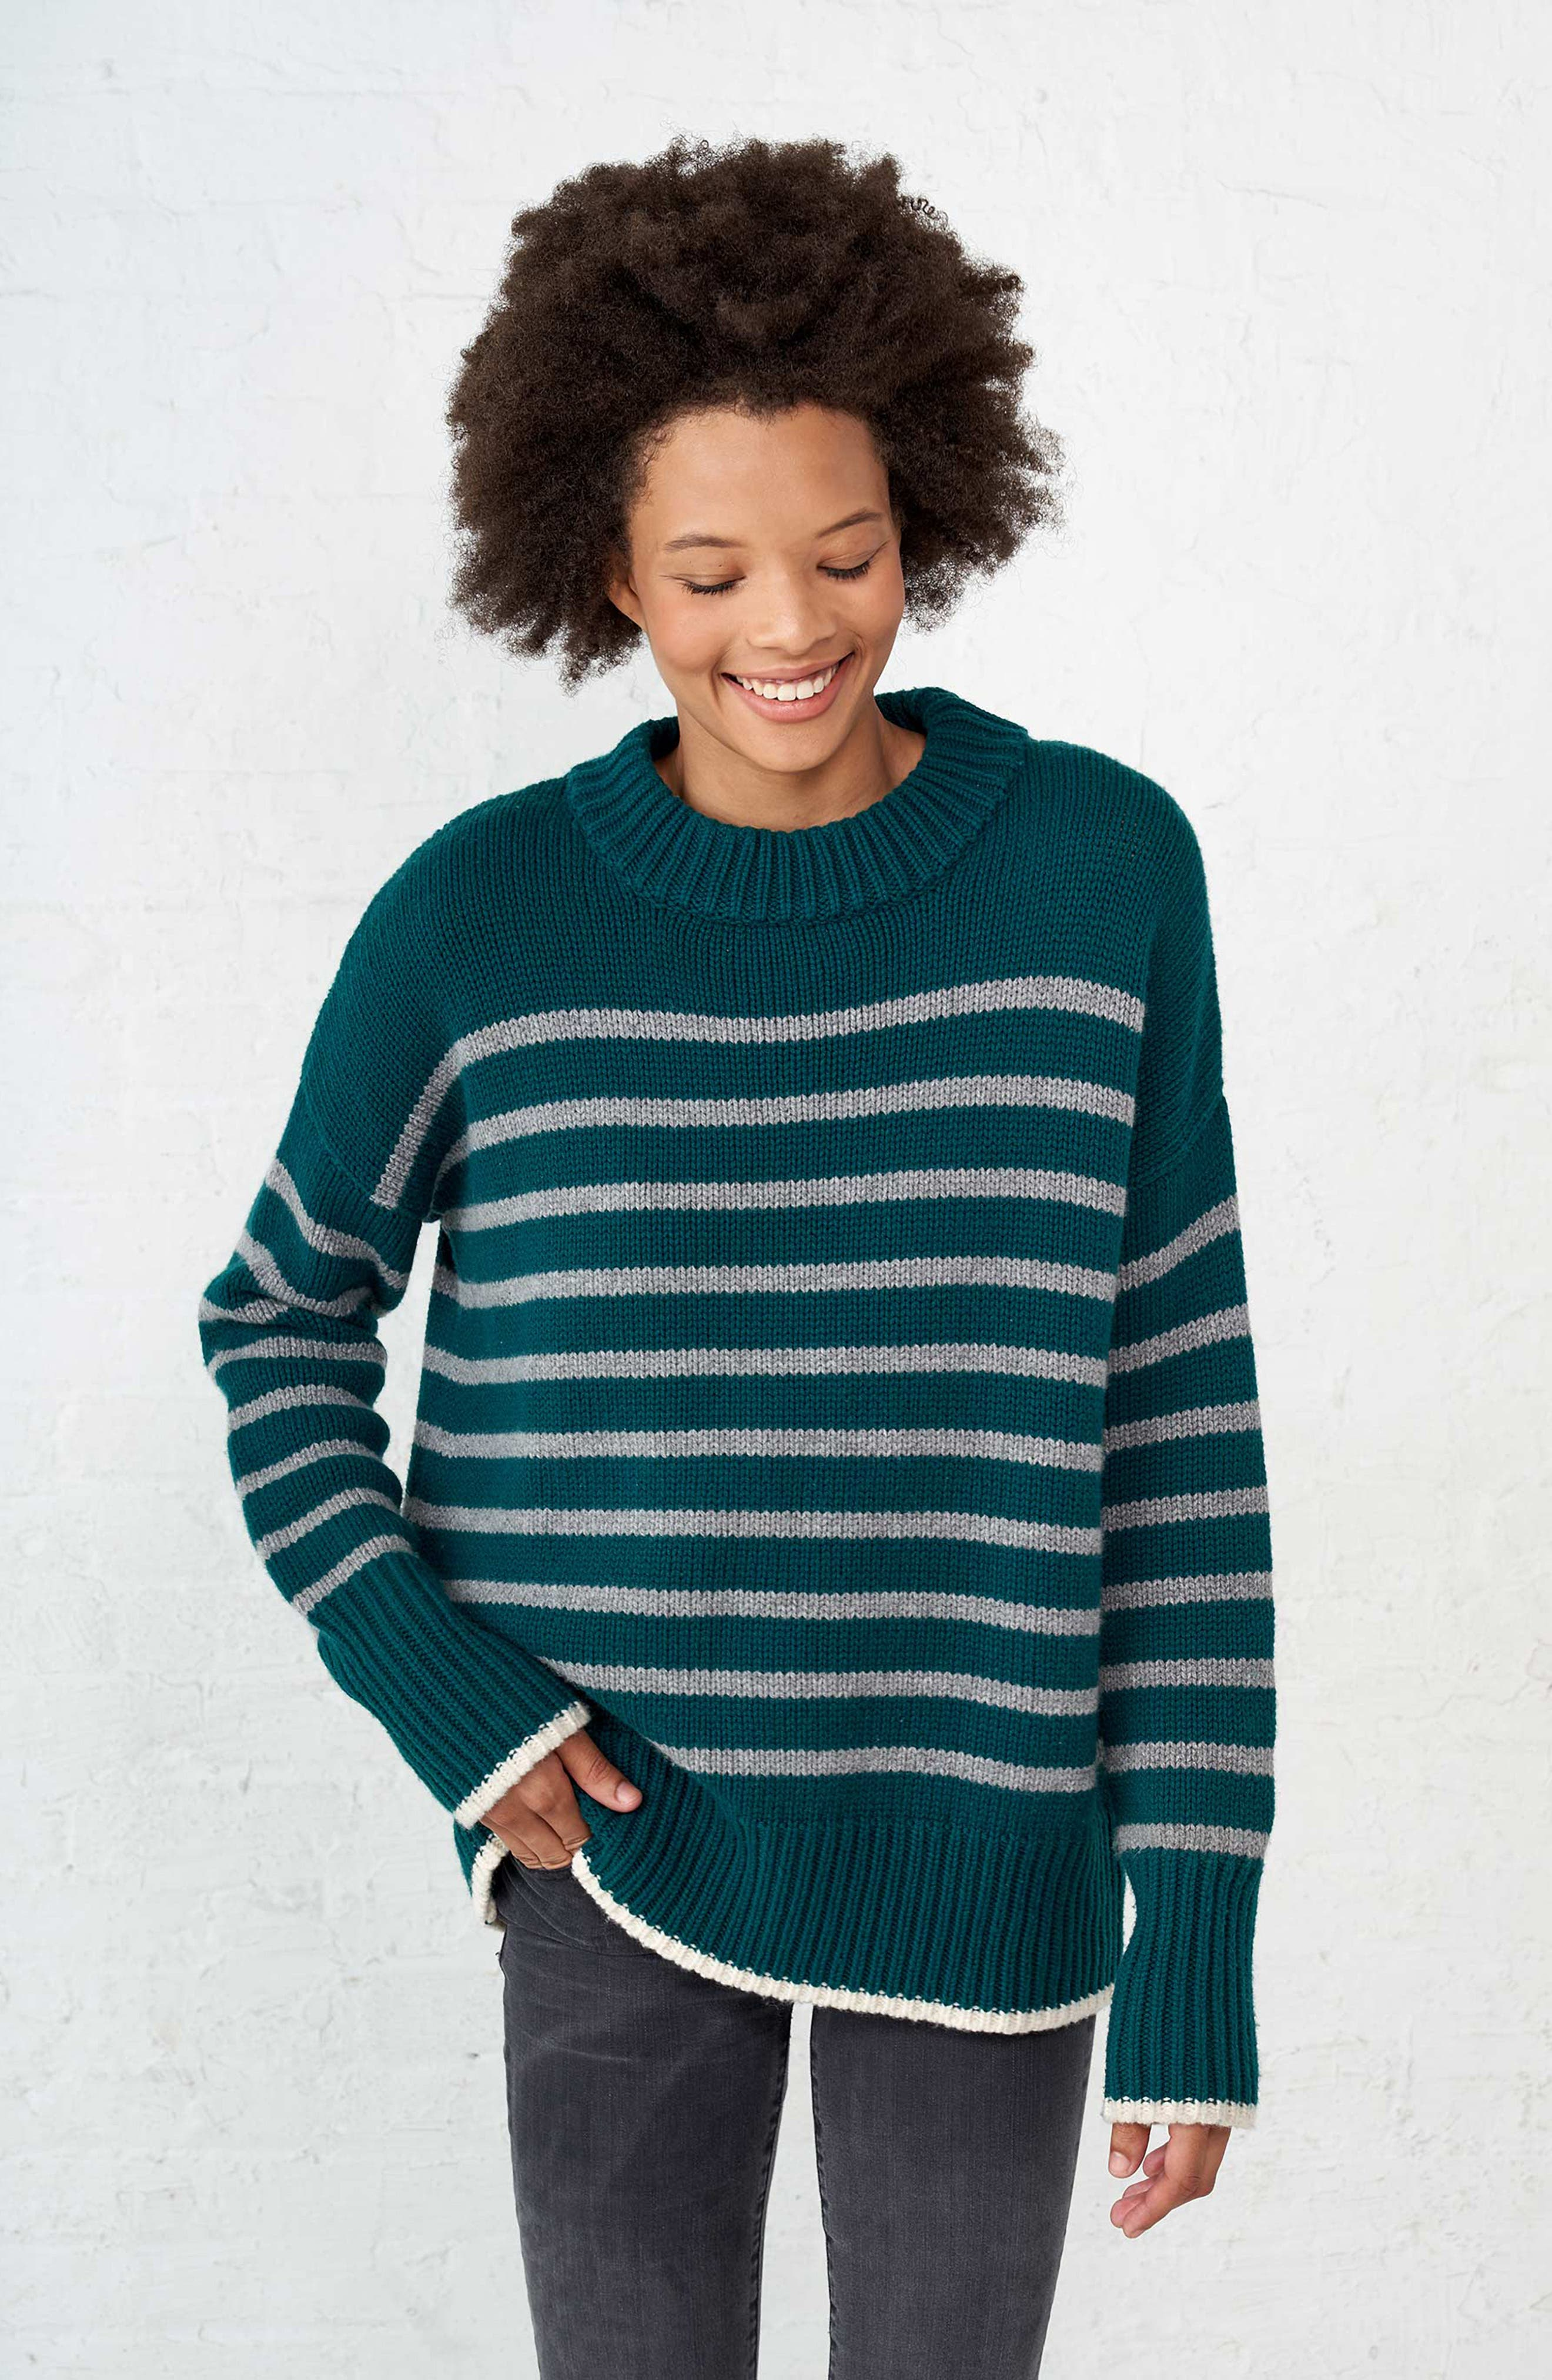 Marin Wool & Cashmere Sweater,                             Alternate thumbnail 8, color,                             FOREST GREEN/ GREY MARLE